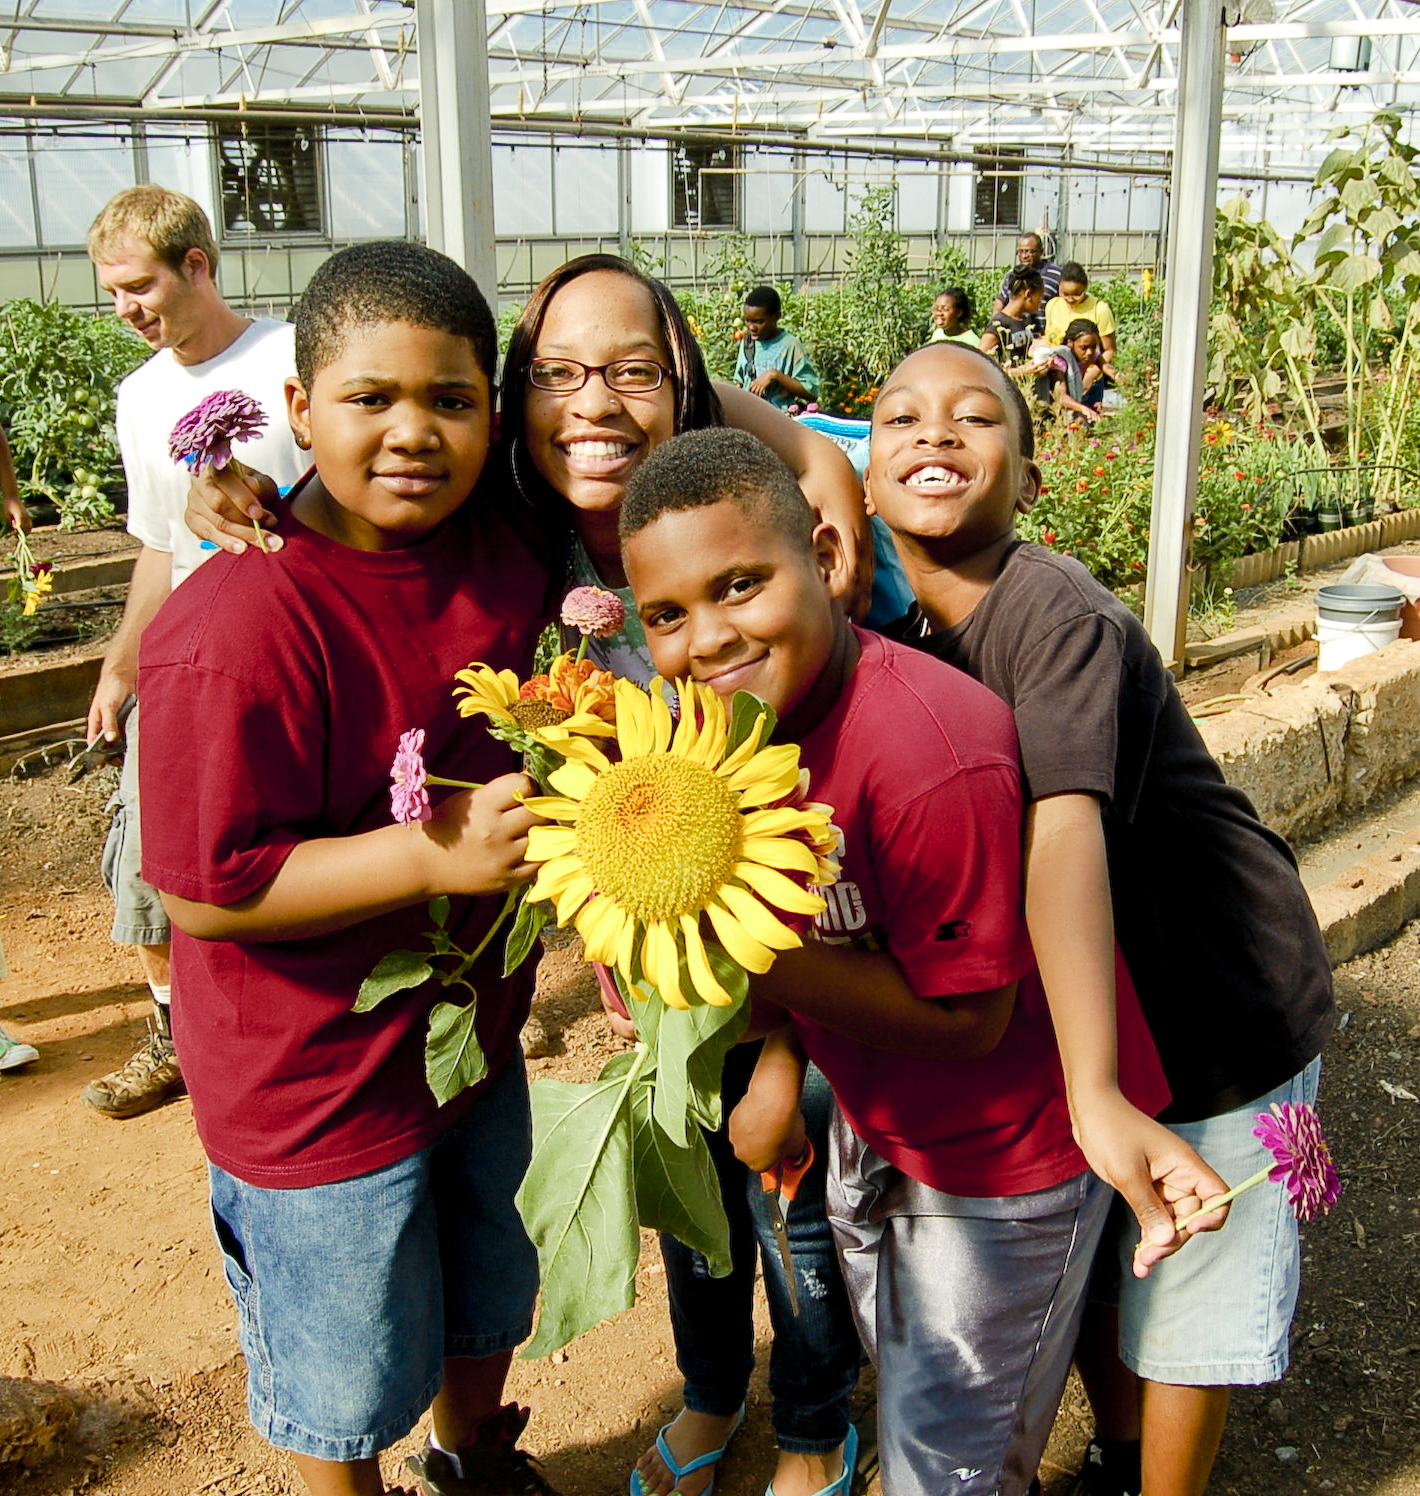 Children with sunflower.